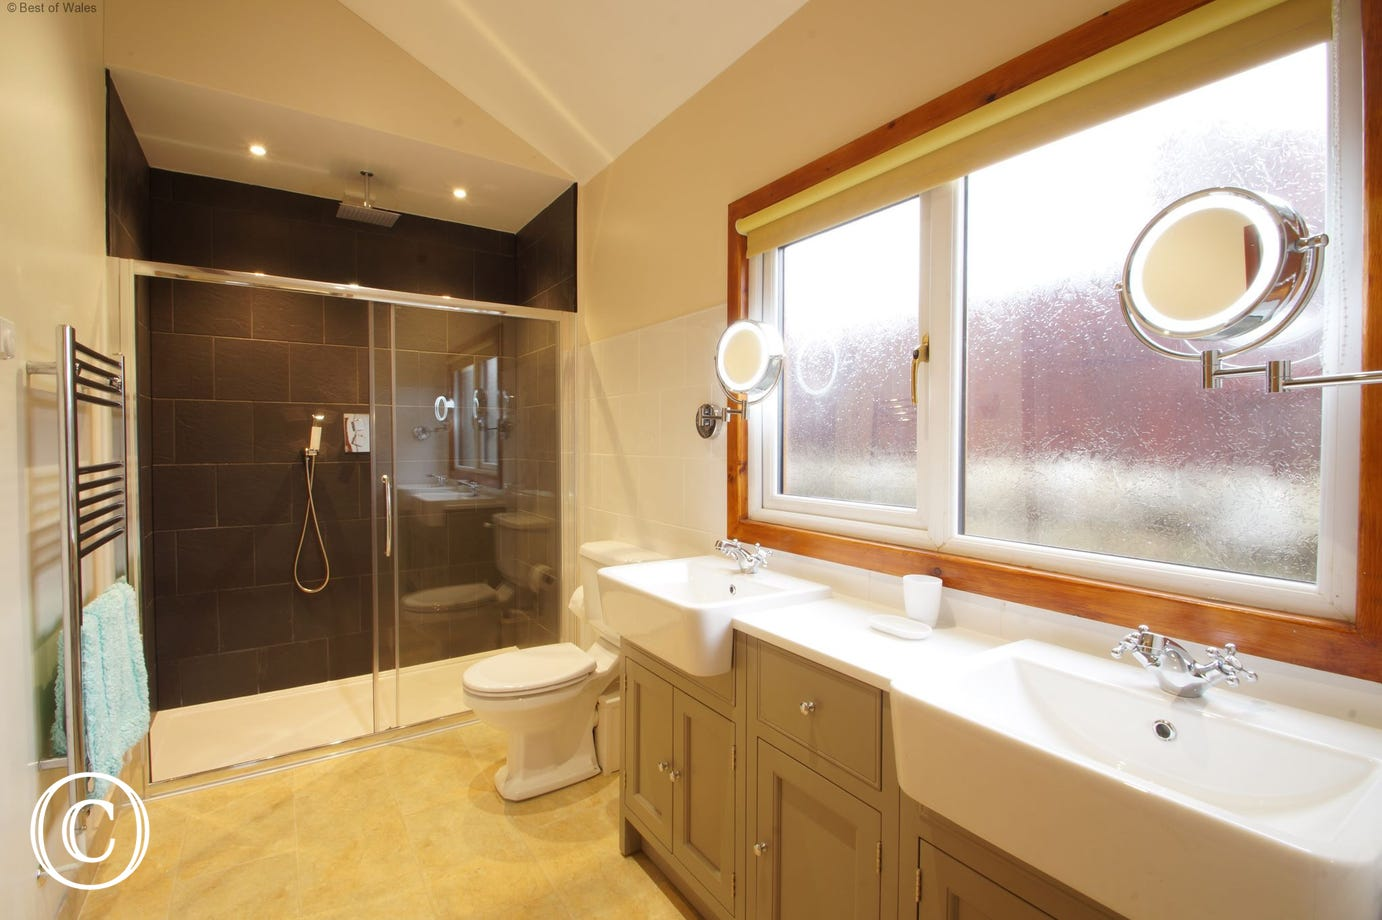 Spacious ensuite shower room with a large double shower